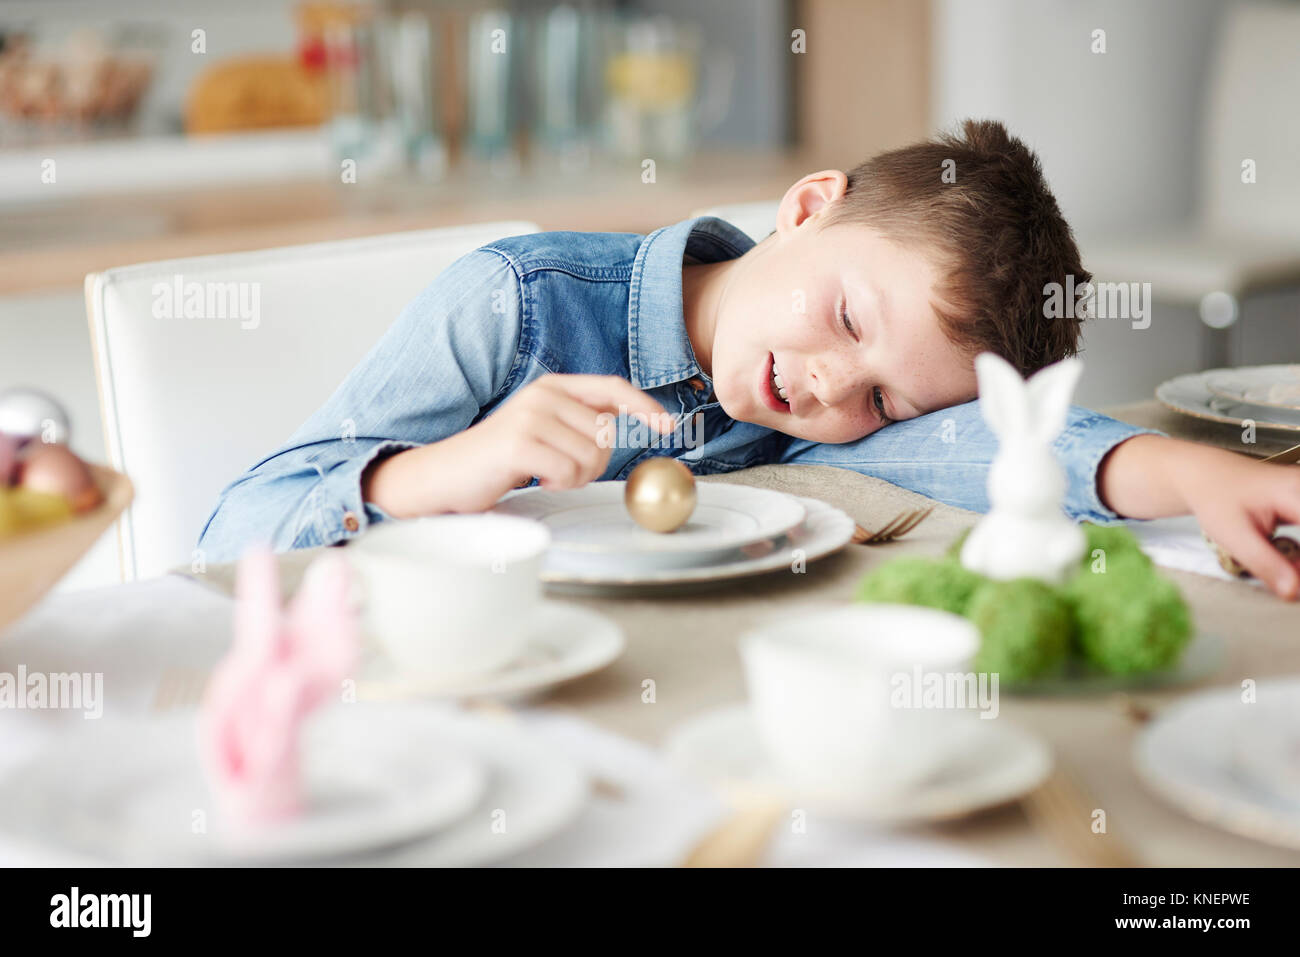 Boy at dining table playing with golden easter egg on plate - Stock Image